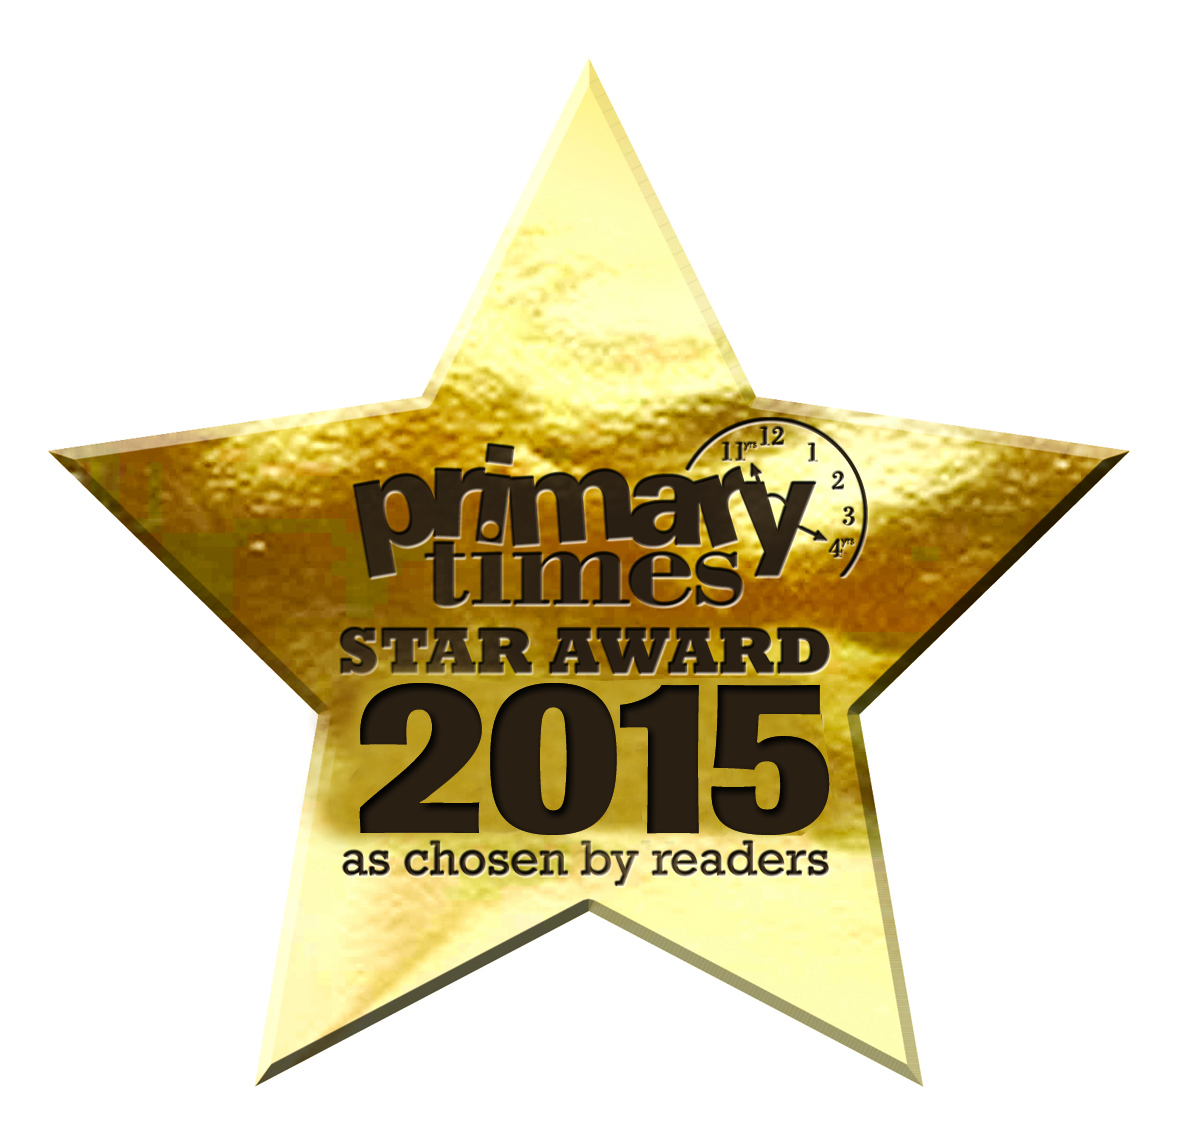 Primary Times Star Awards winner 2015